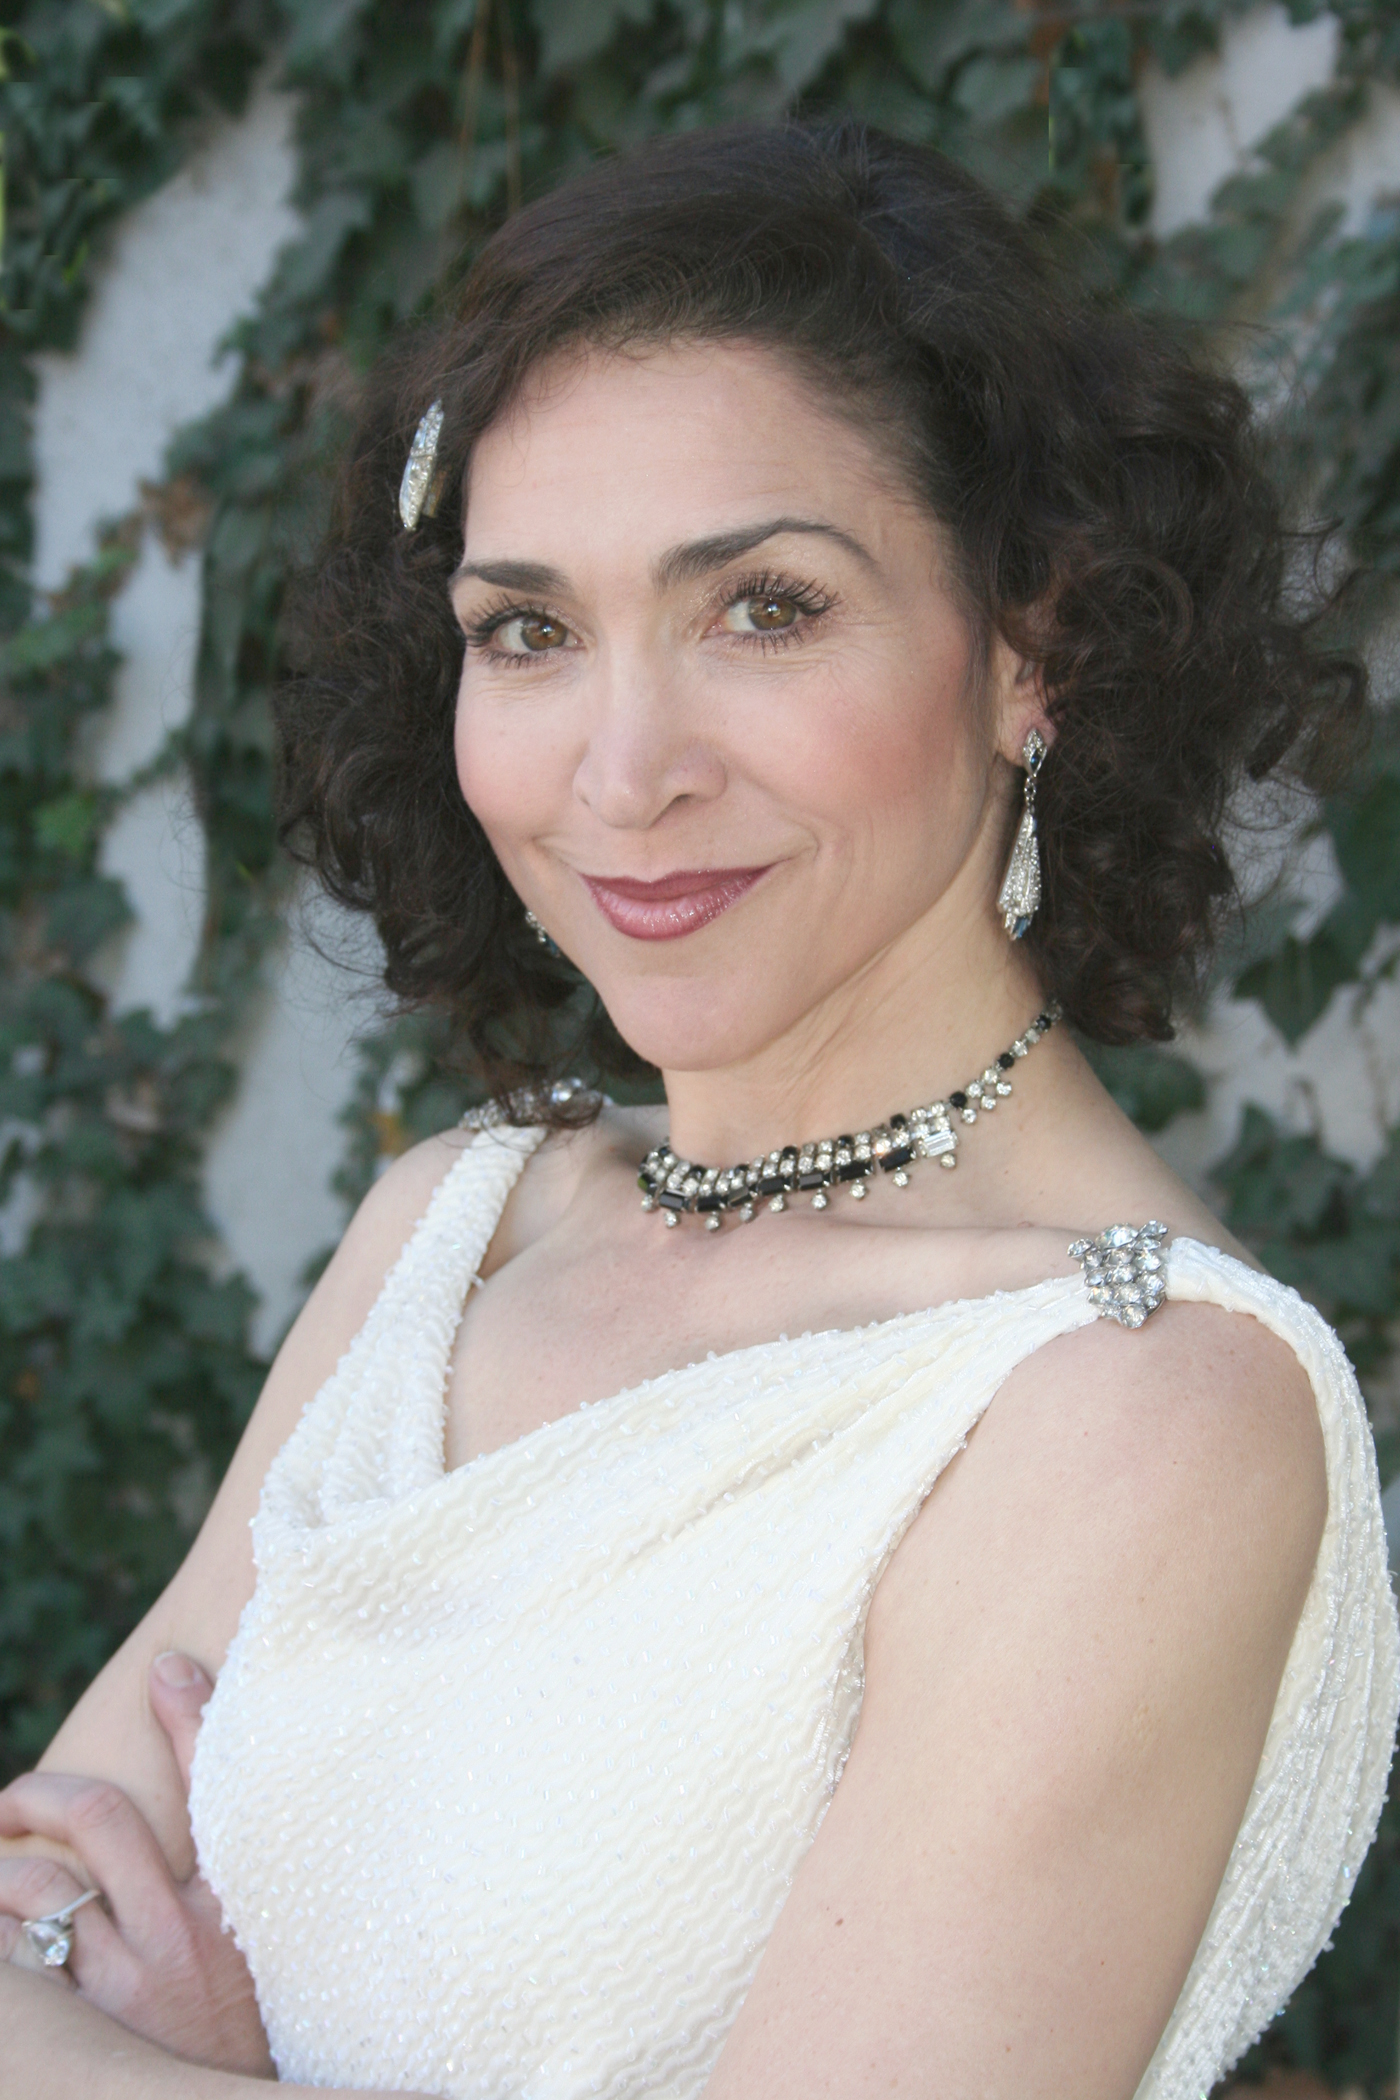 Stasha Surdyke stars in PRIVATE LIVES as Amanda, and also serves as the show's producer.